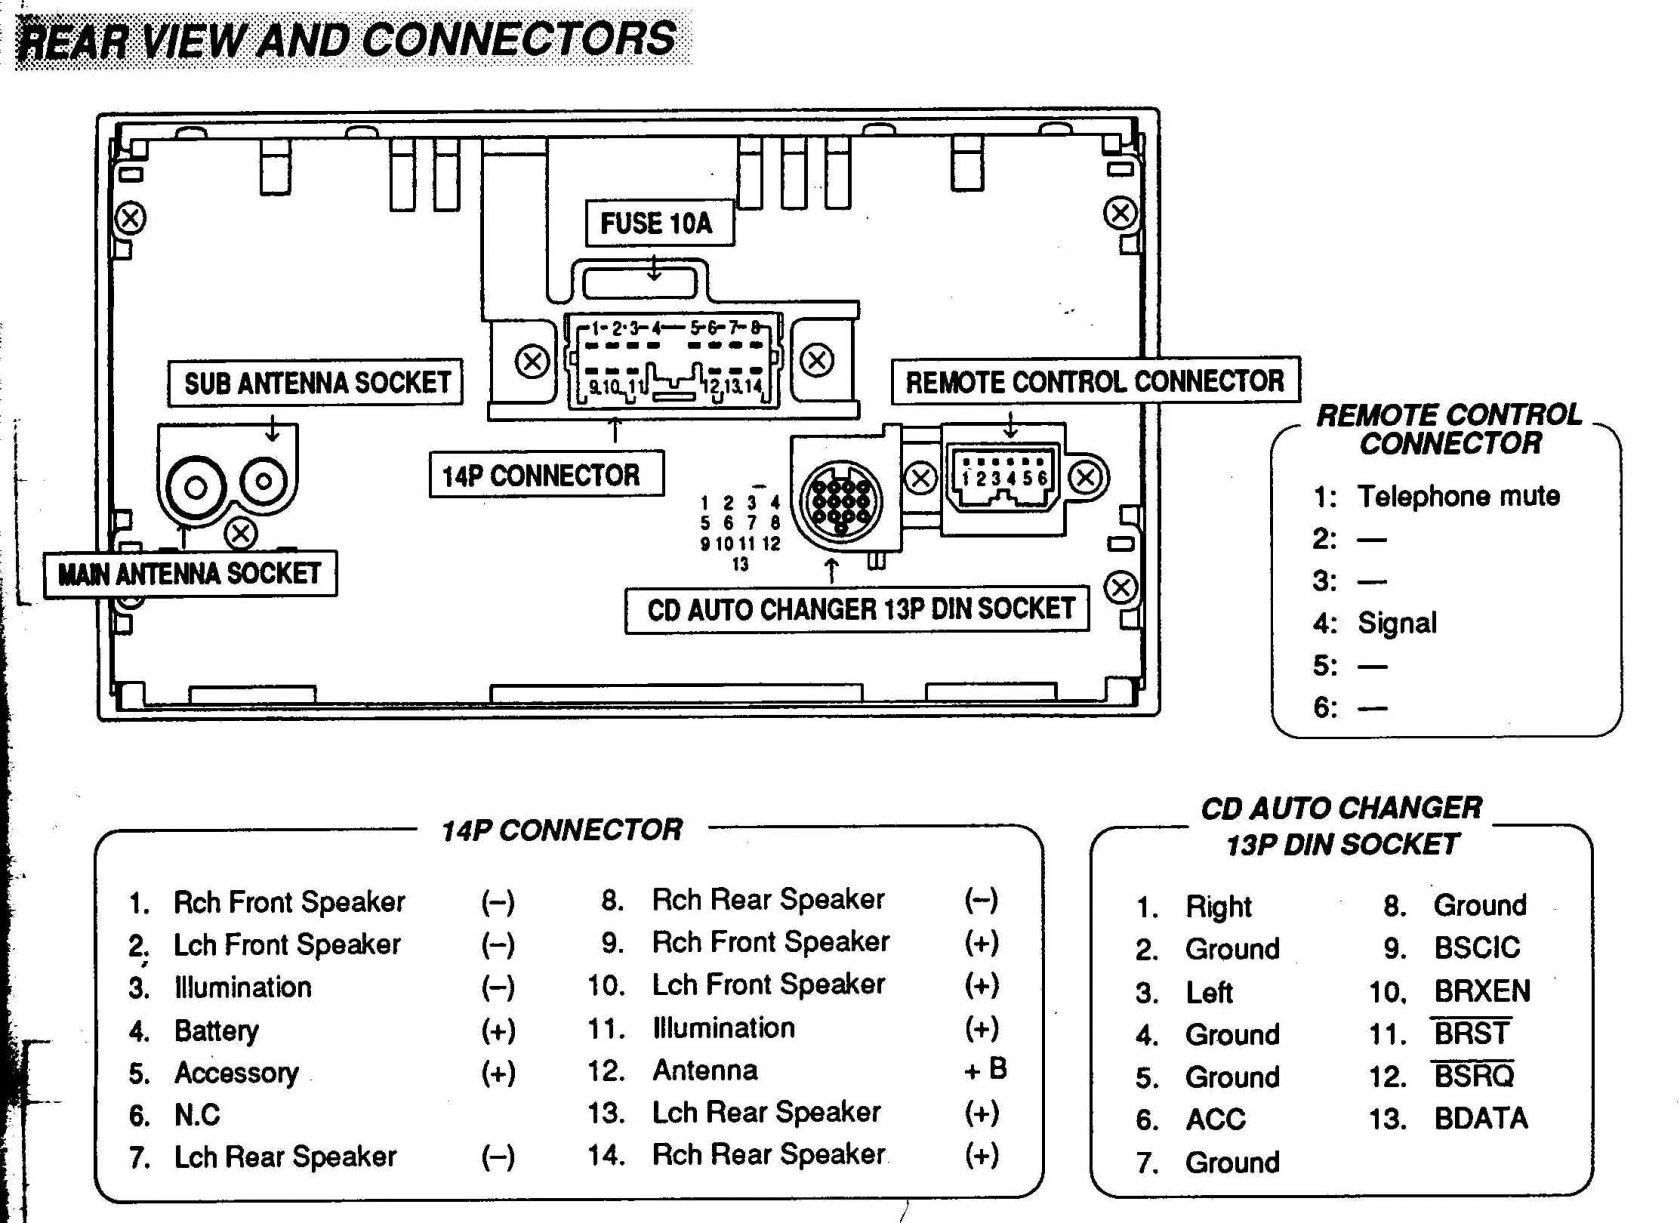 Metra 70 5520 Wiring Diagram - Wiring Diagrams Img - Metra 70-5520 Wiring Diagram